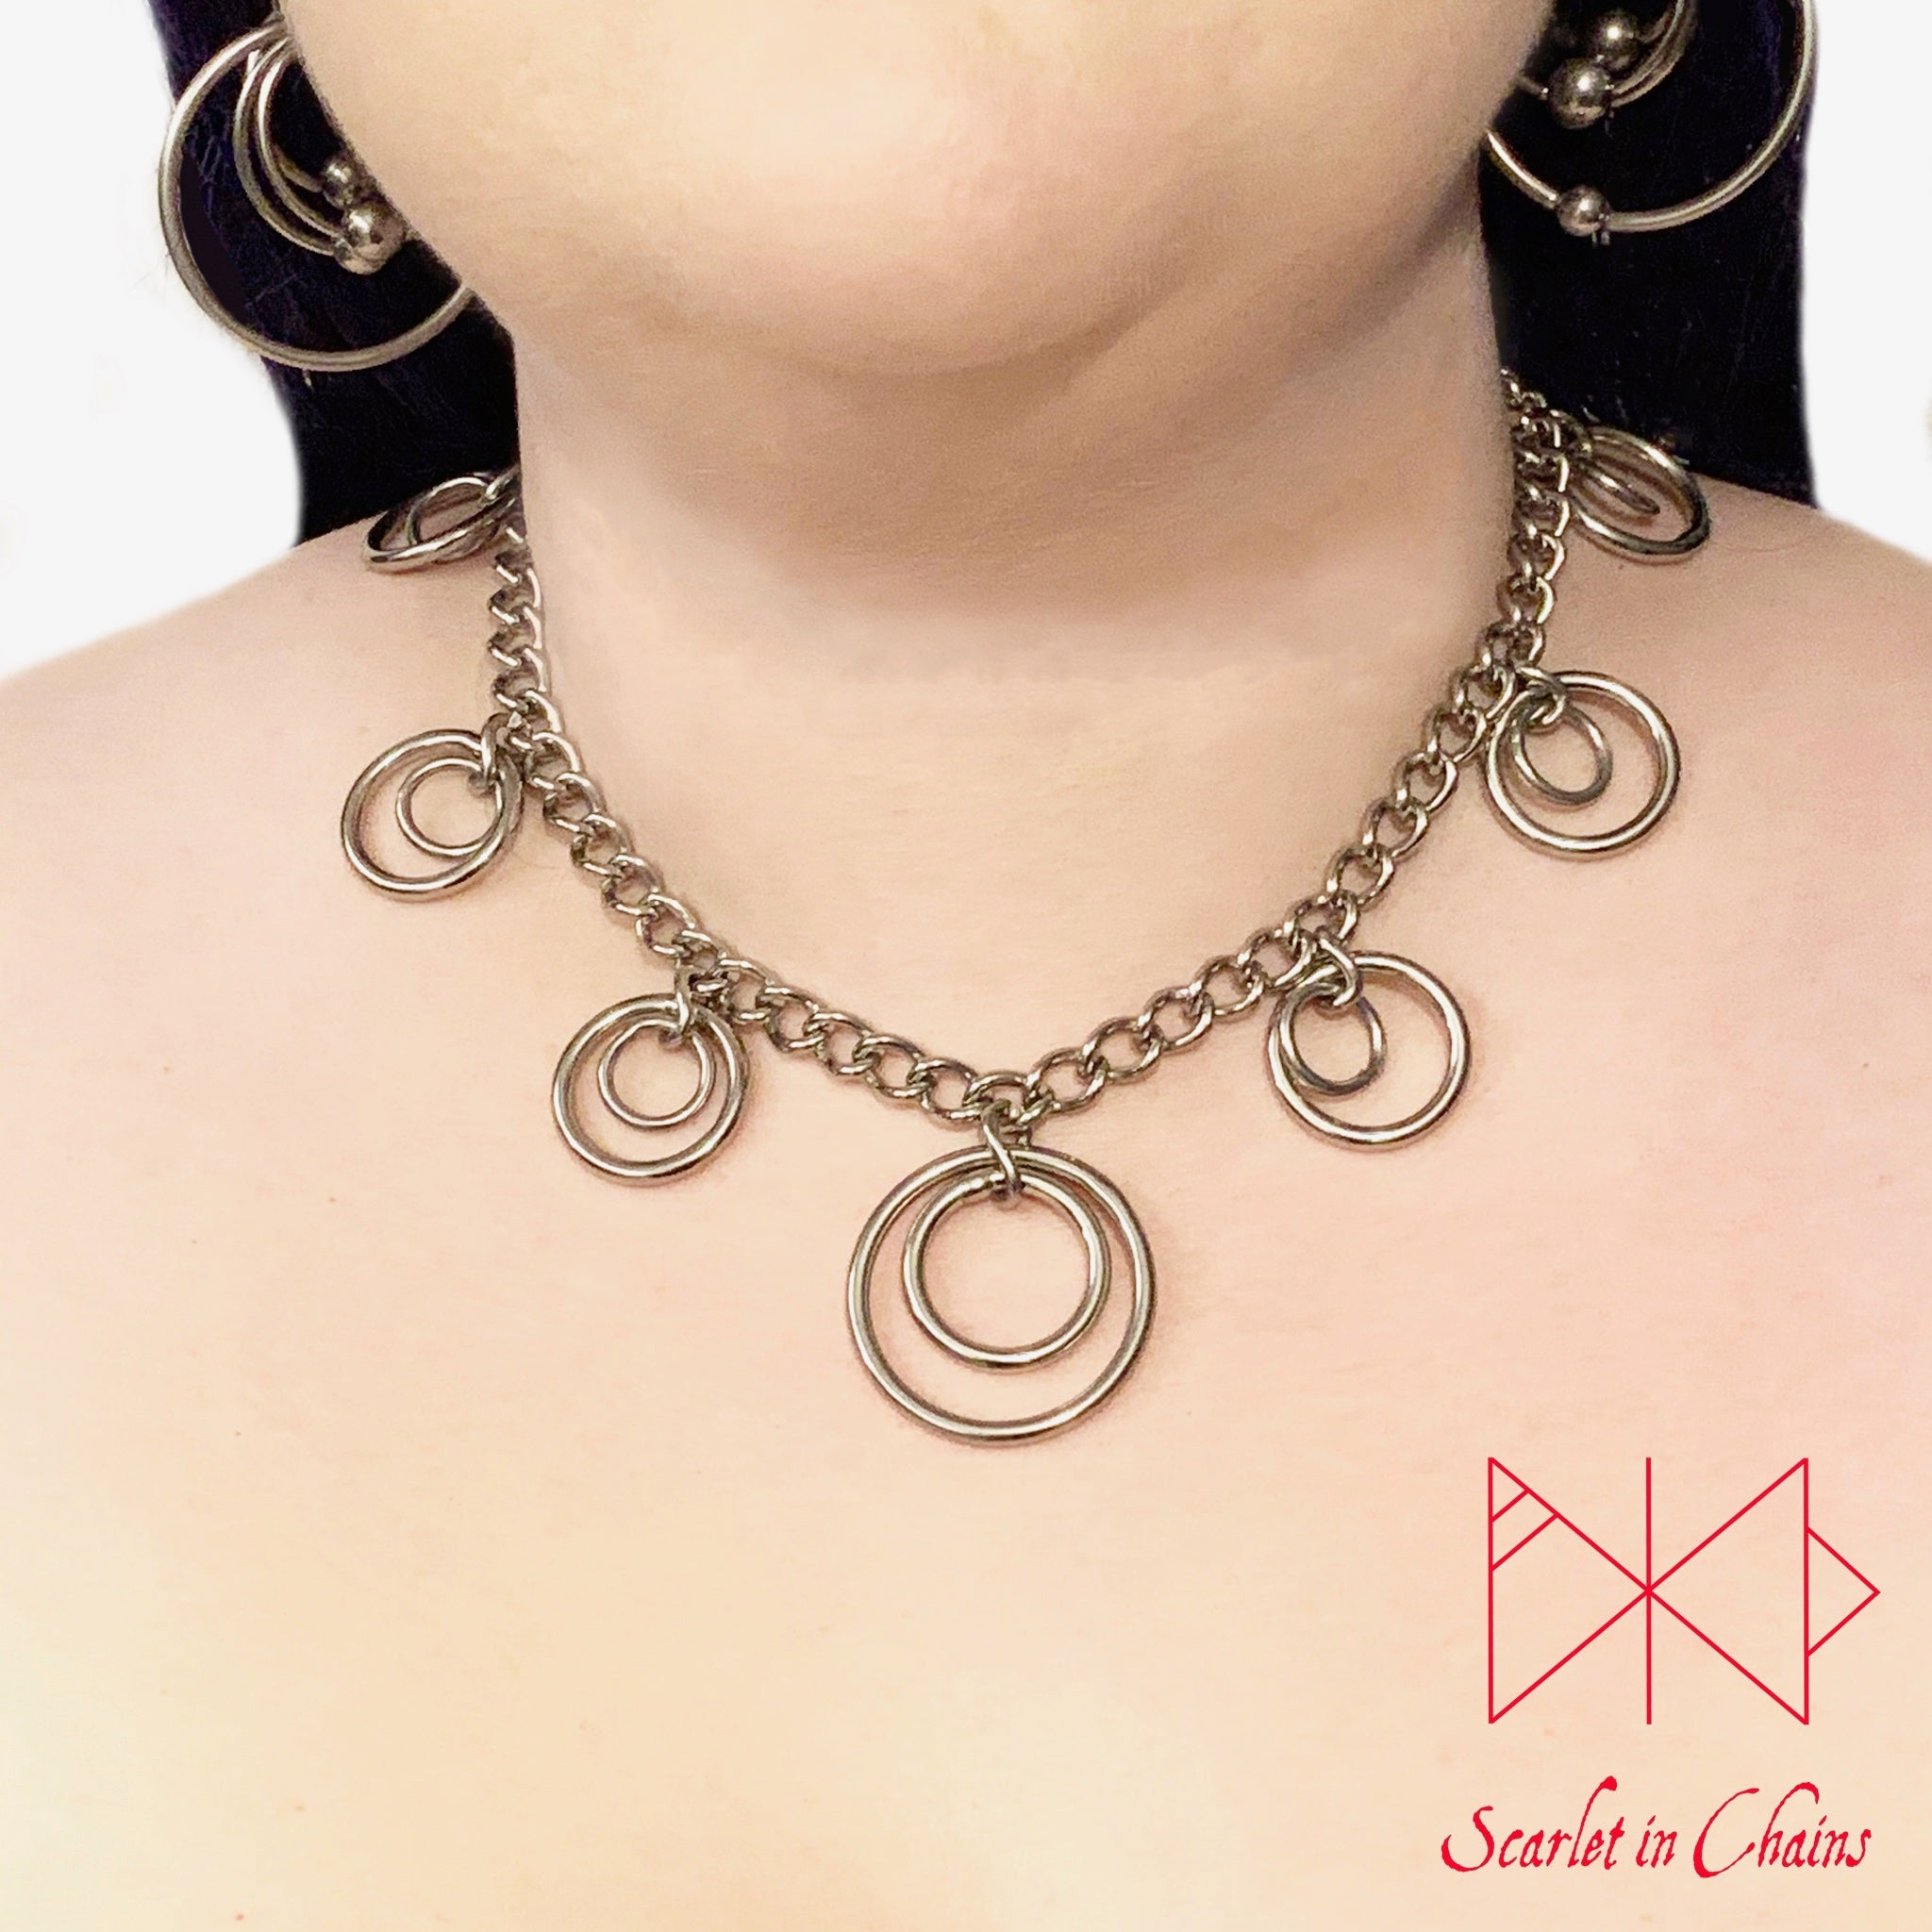 Valkyrie Eclipse Mini Collar shown worn. made from 304 Stainless Steel